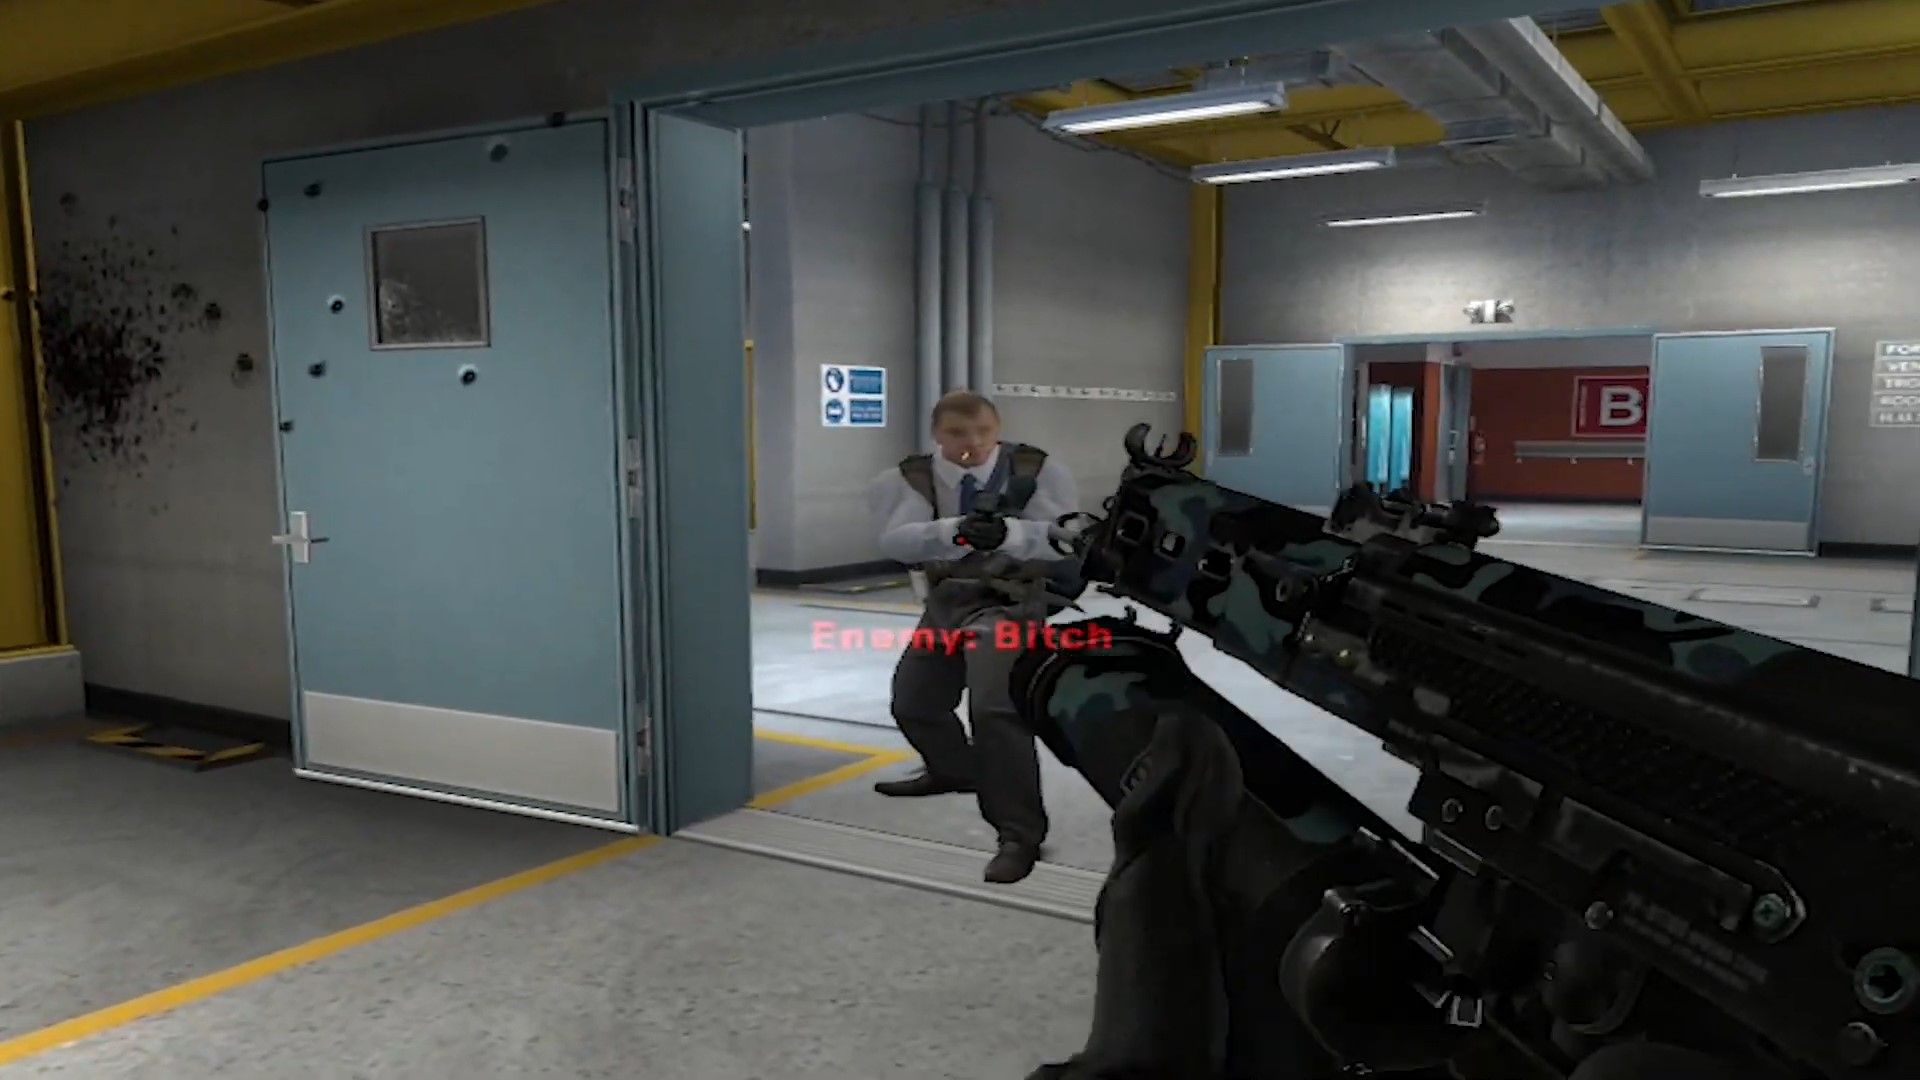 Gets shot by the Deagle while reloading his P90